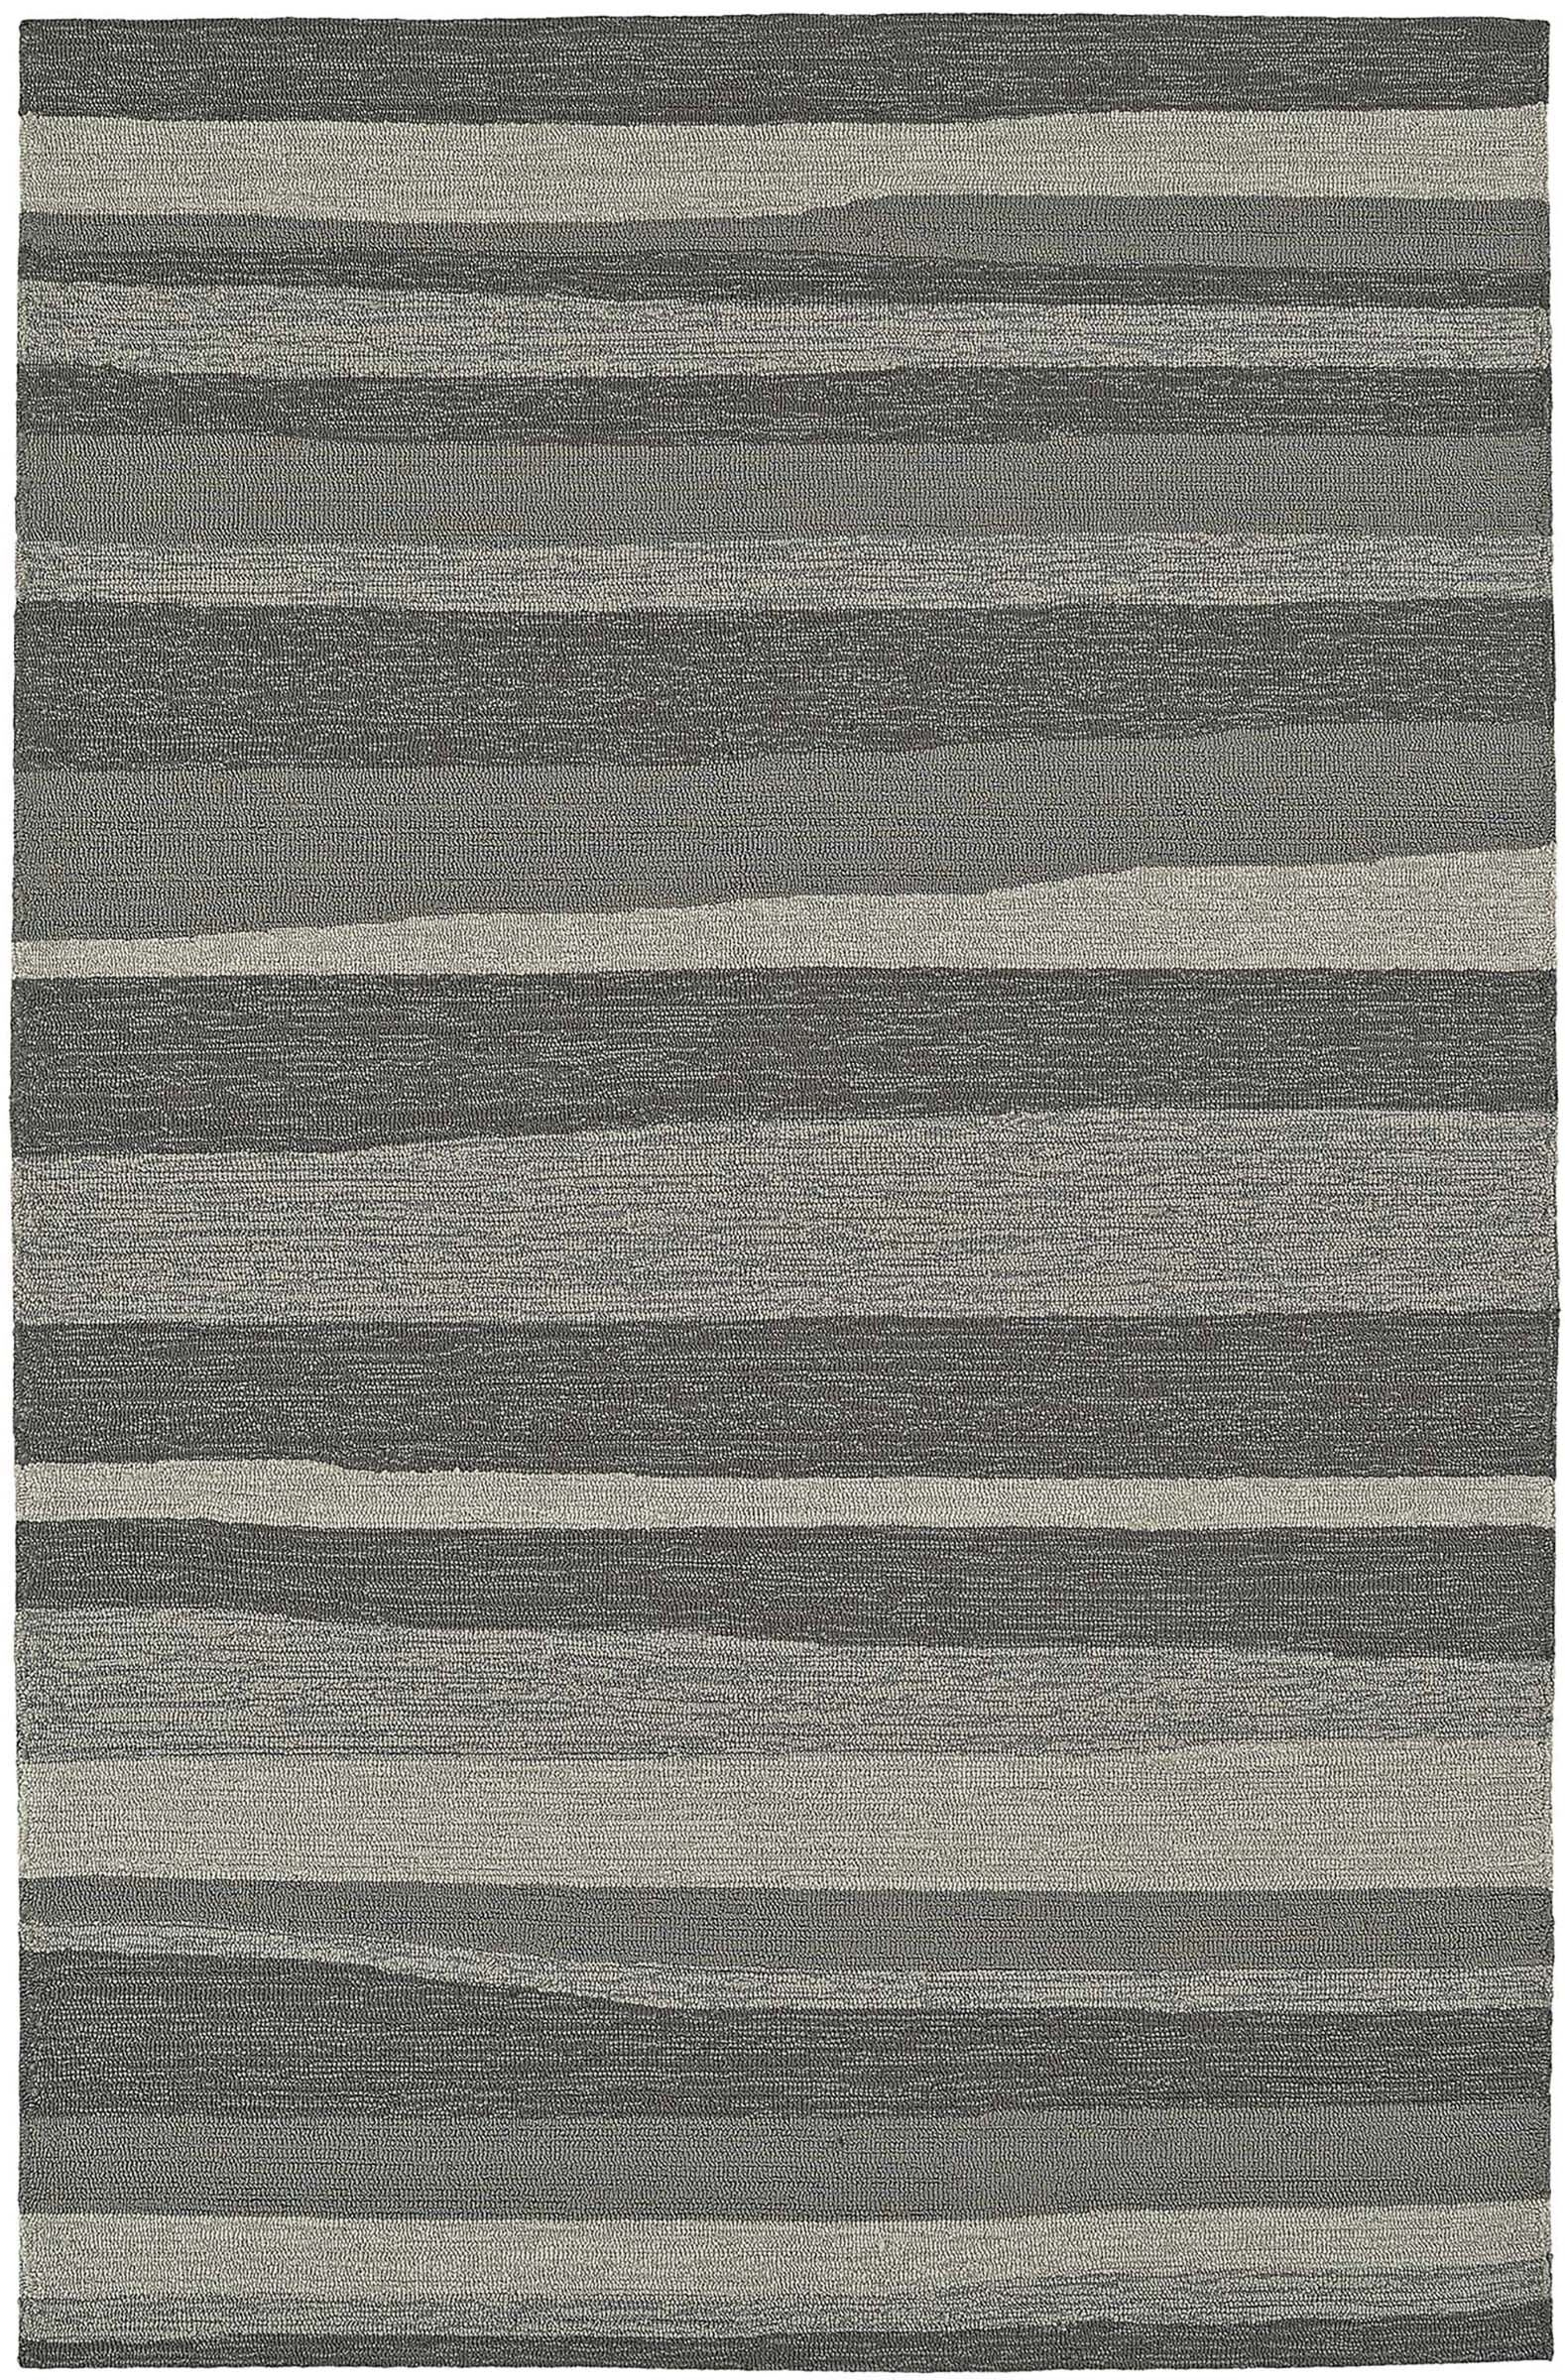 Lovitz Hand-Tufted Pewter Indoor/Outdoor Area Rug Rug Size: Rectangle 8' x 10'